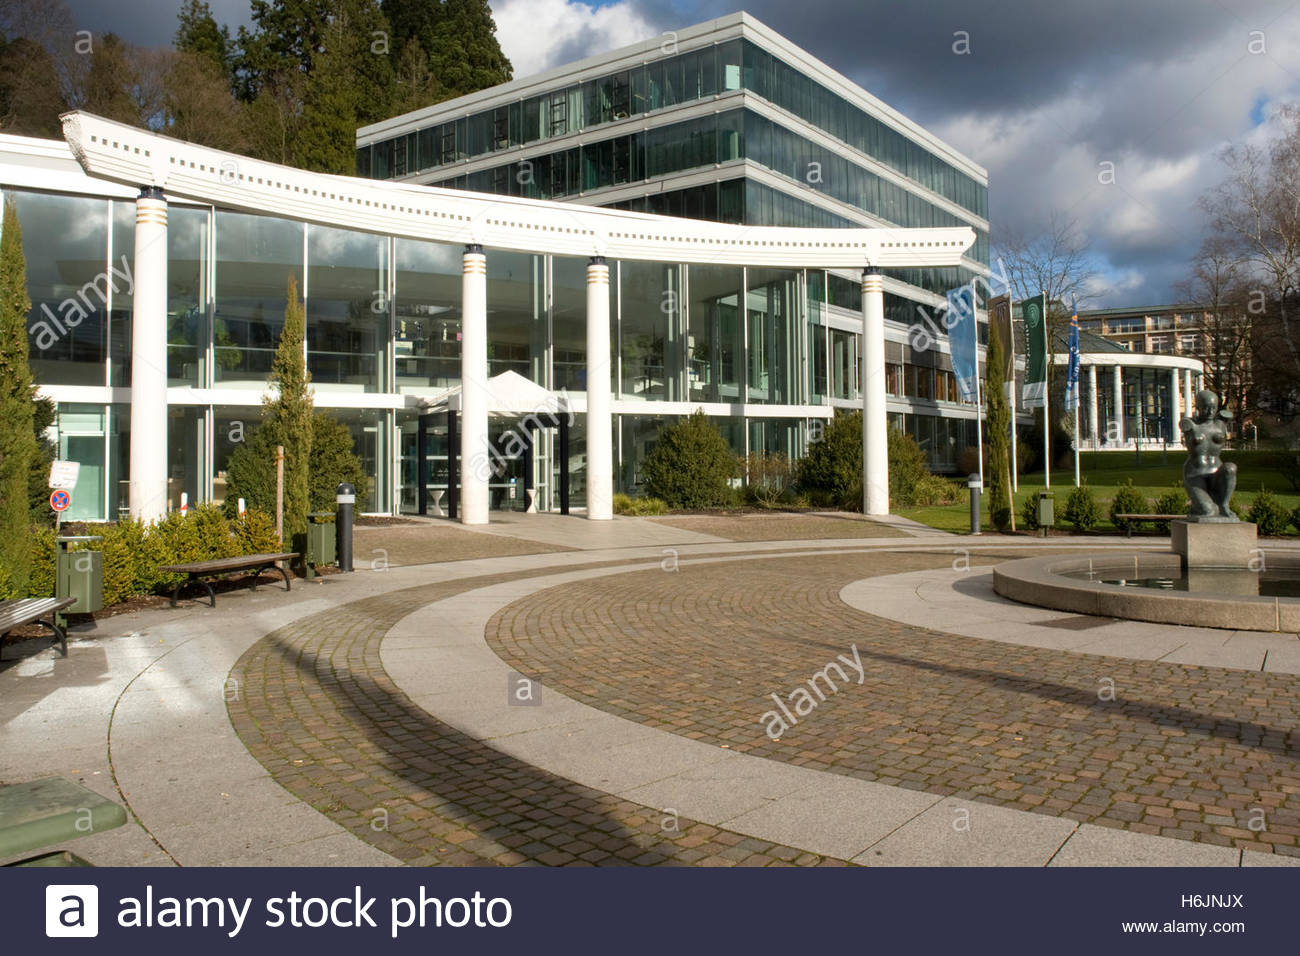 Caracalla Therme The Black Forest, Caracalla-Therme thermal bath, spa town of Baden-Baden, Black ...